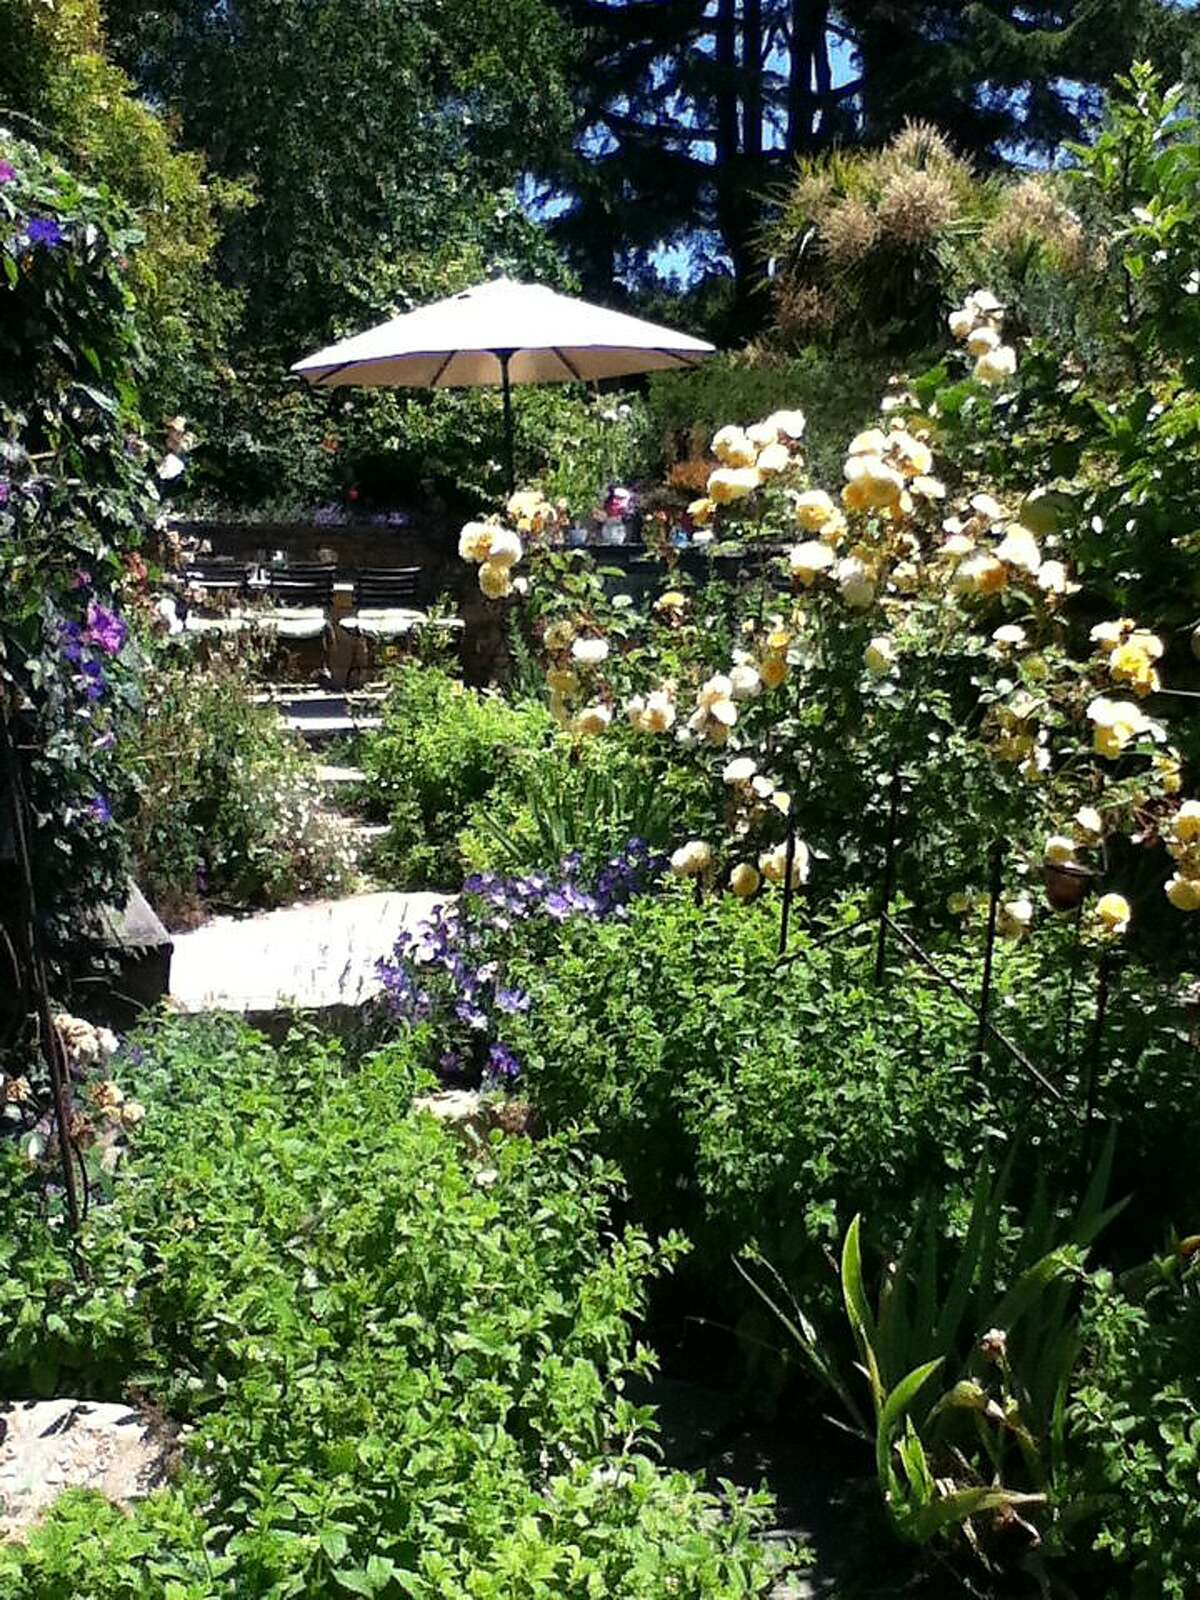 Laurie Stern's backyard in El Cerrito is home to bees that help create the raw materials for her line of moisturizers and perfumes.